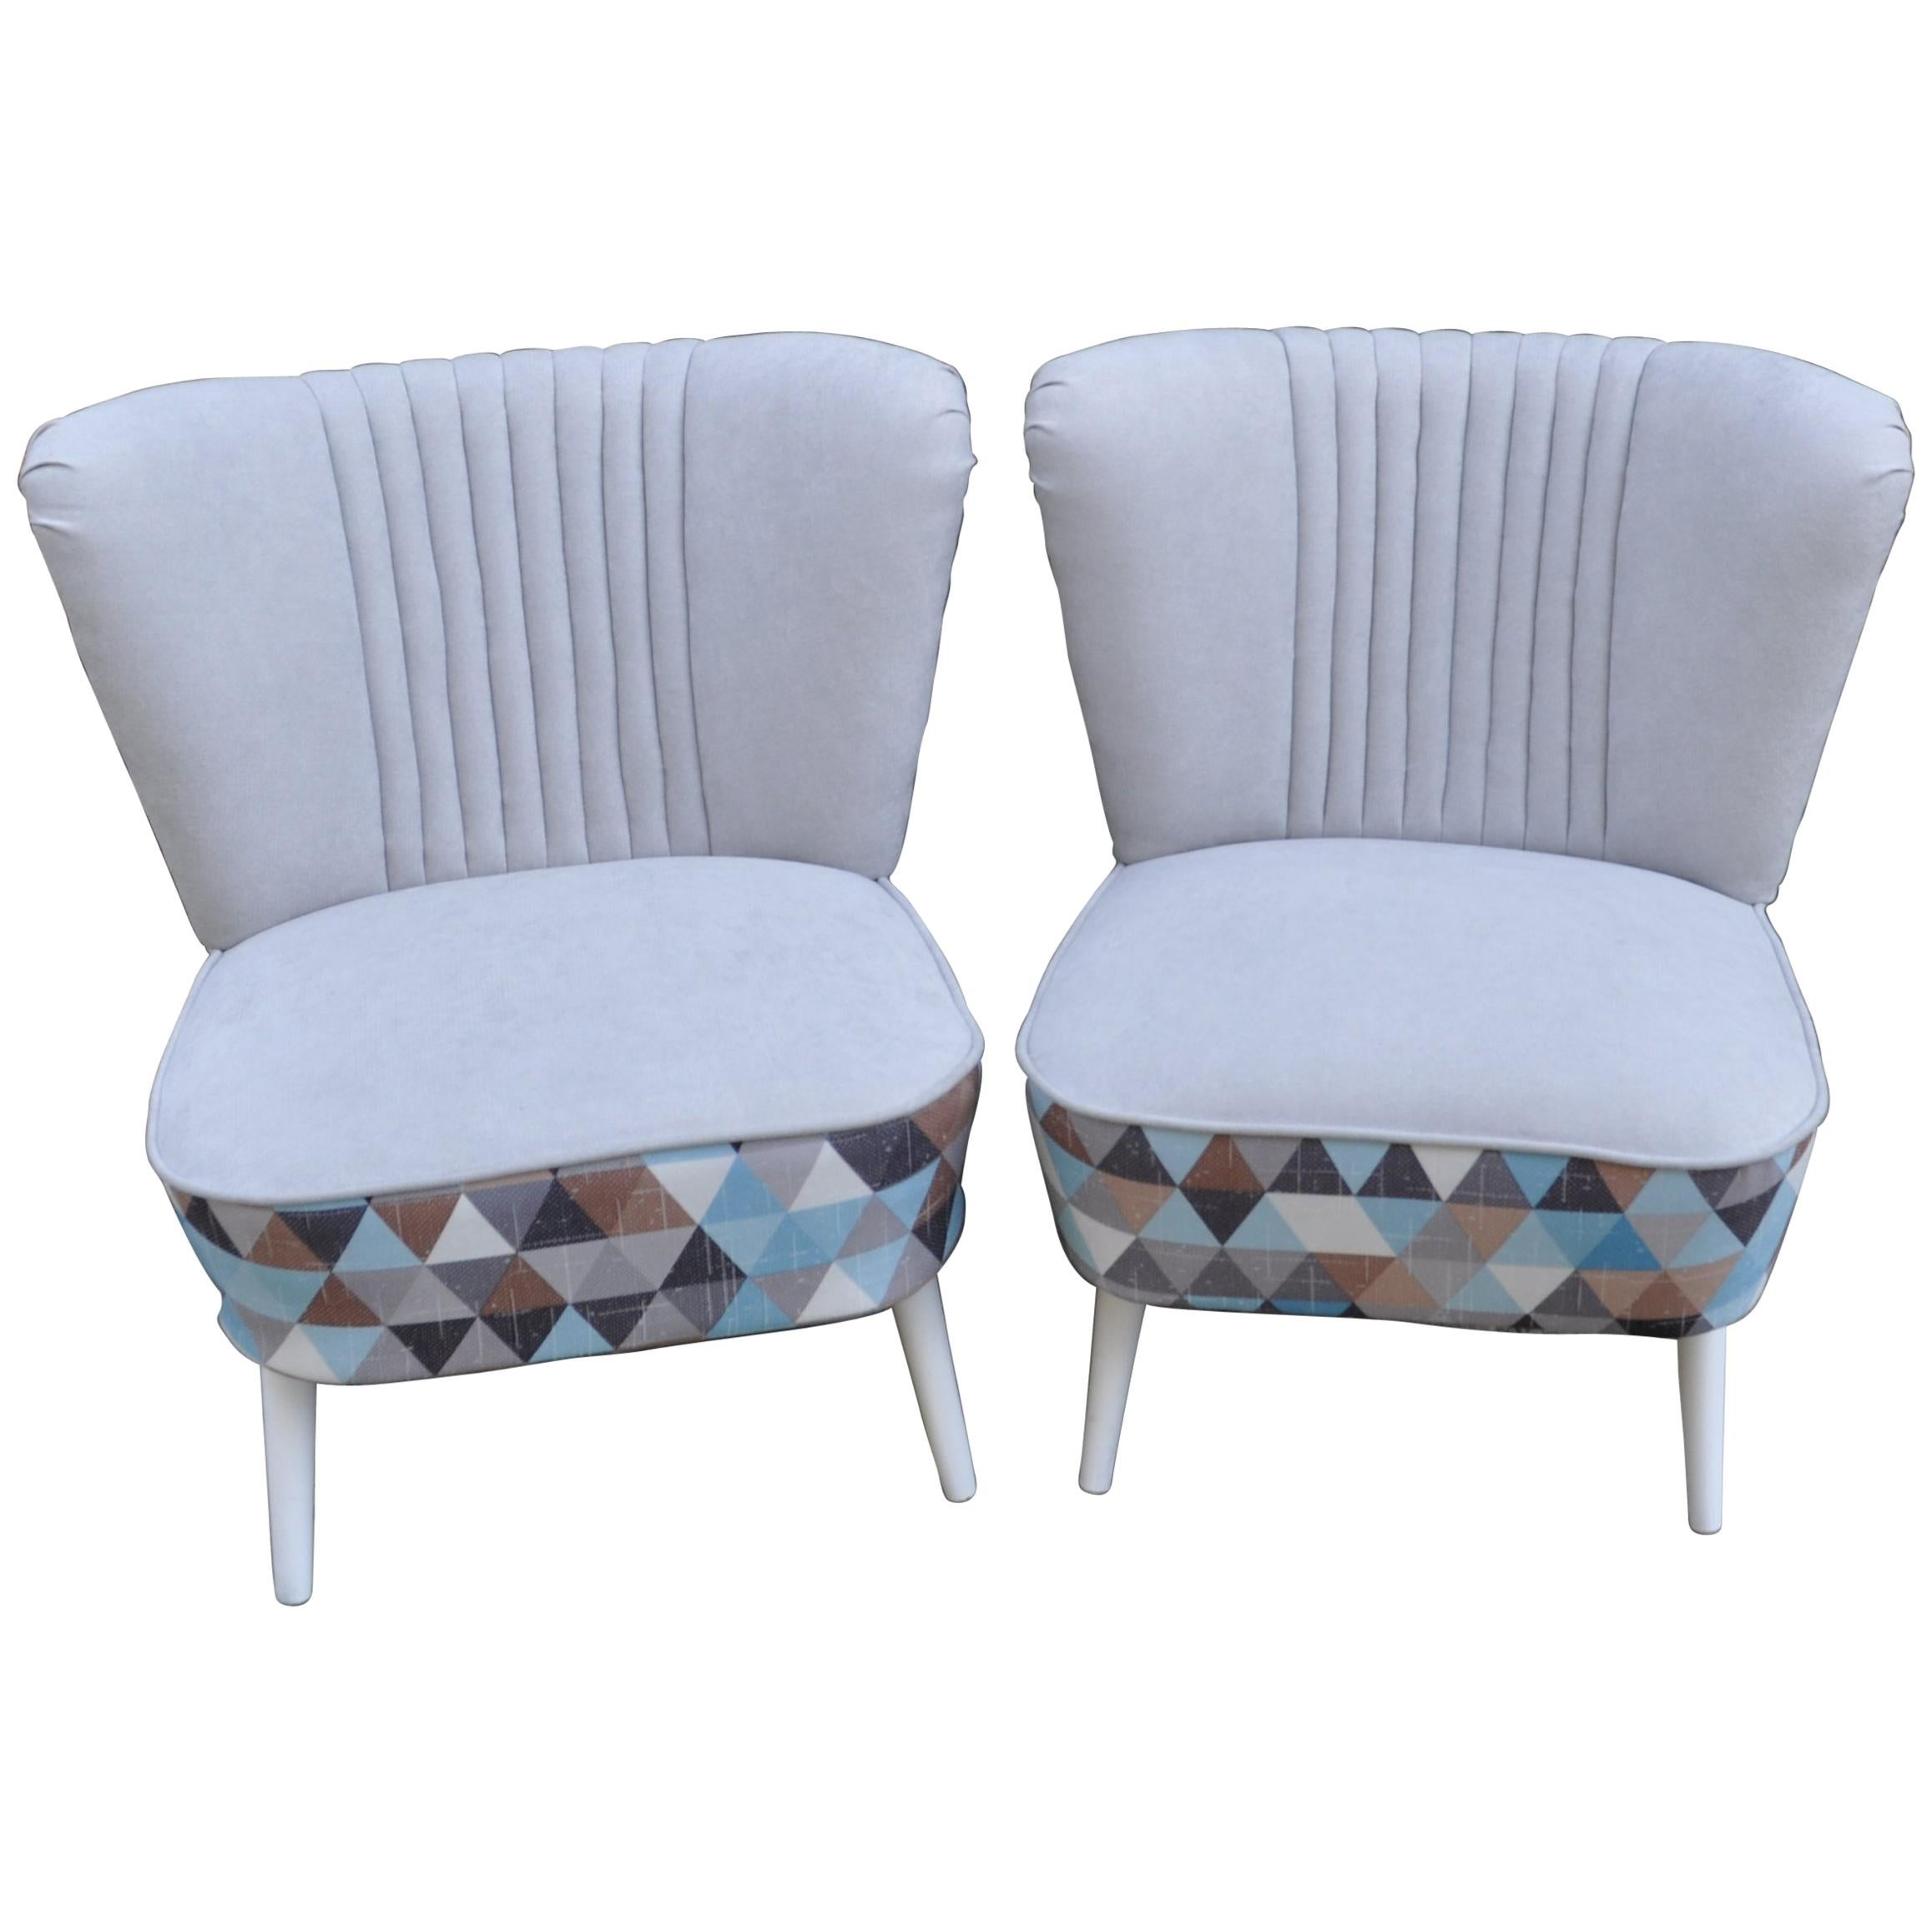 Pair Of Cocktail Chairs Gray And Geometric Shape Fabric